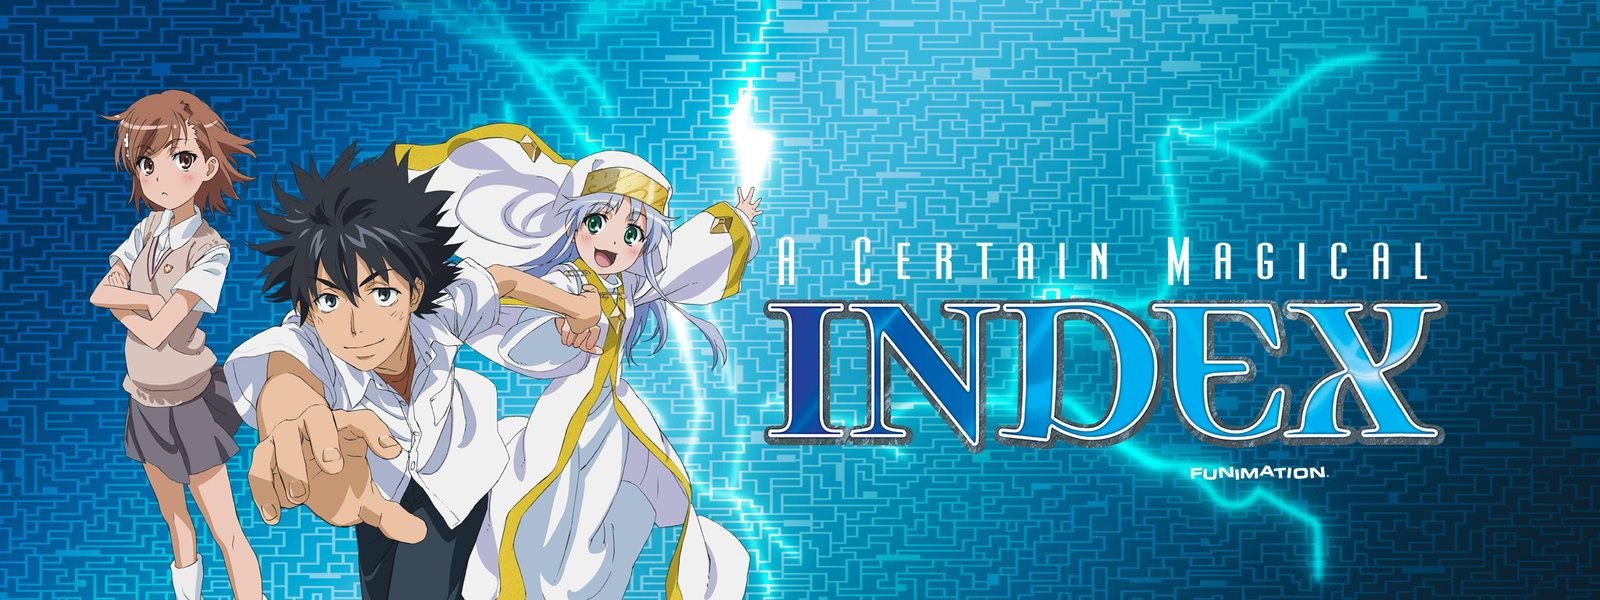 A certain magical index hulu mobile clips with images